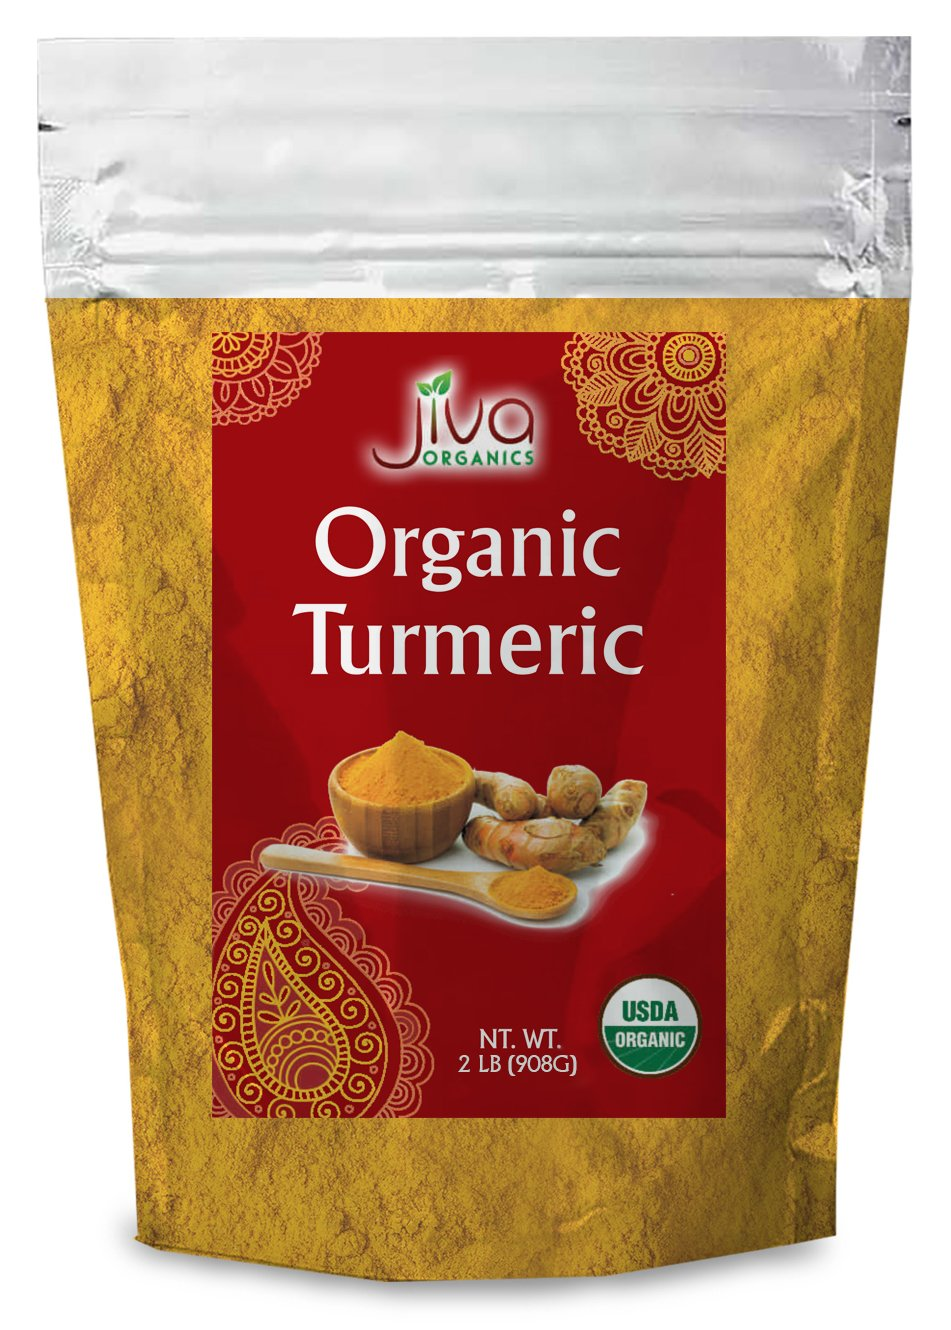 Jiva Organics Turmeric Powder 2 Pound Bag - Value Size!